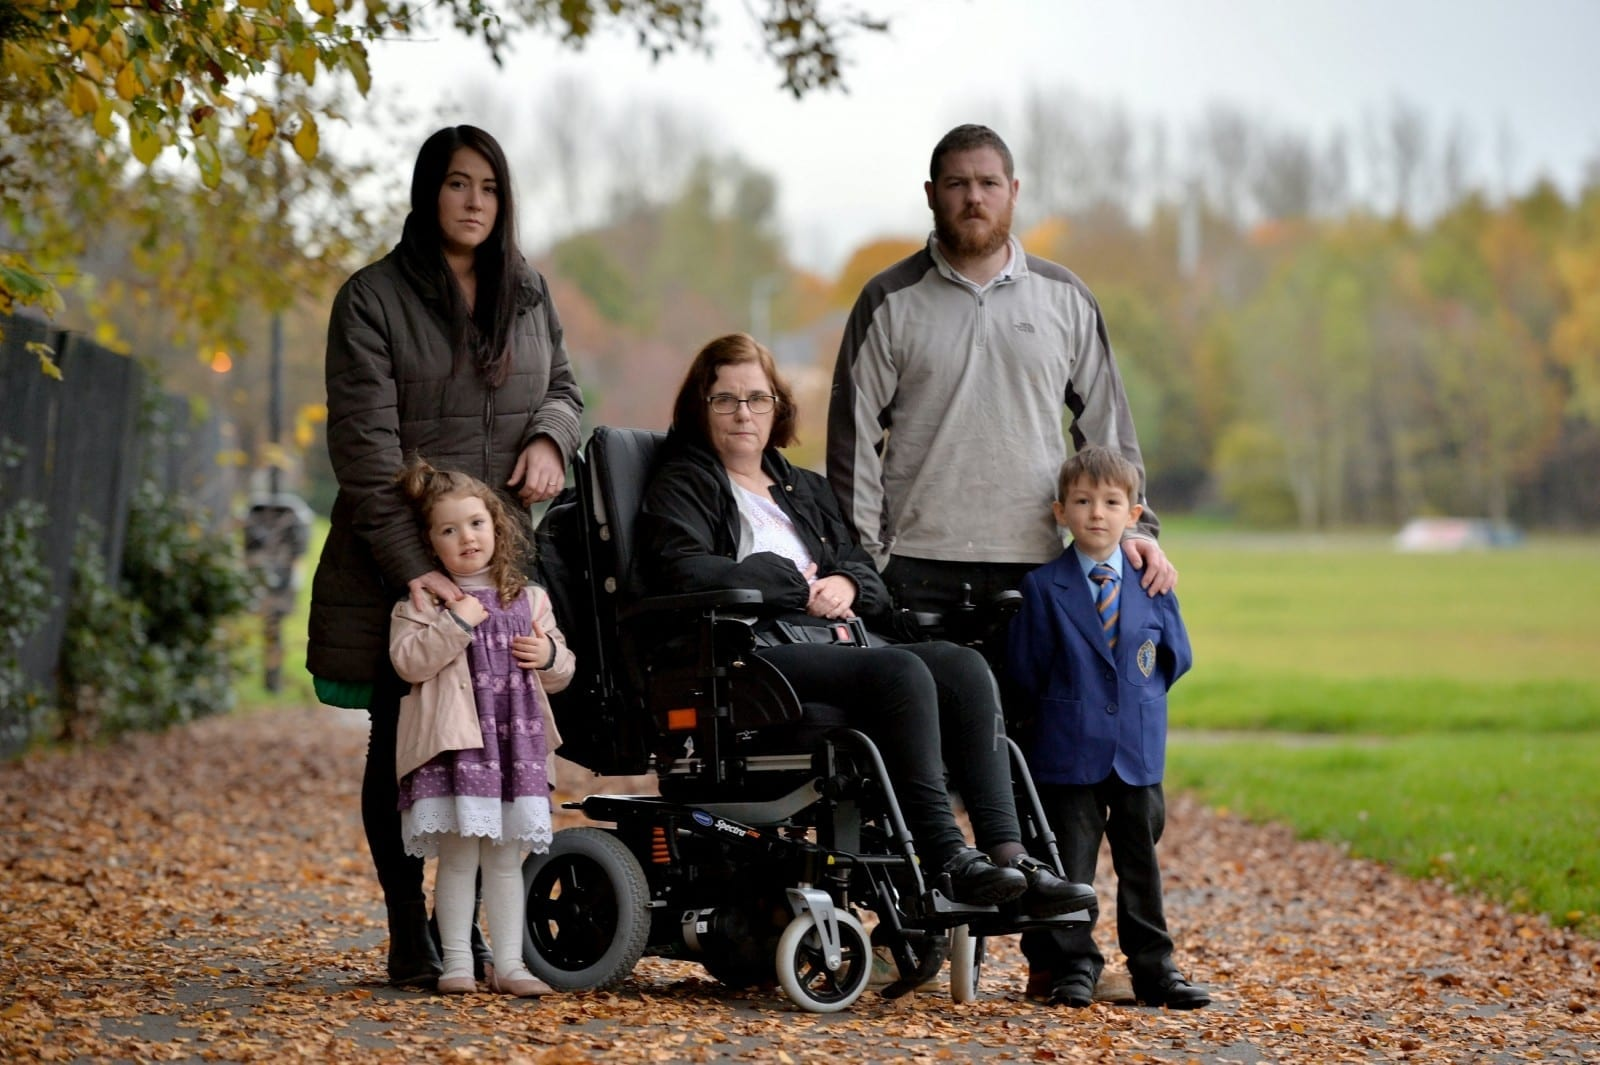 Family Devastated After Plans To Get Paralysed Gran Home For Christmas Put On Hold After Thieves Nick Son's Van And Building Tools